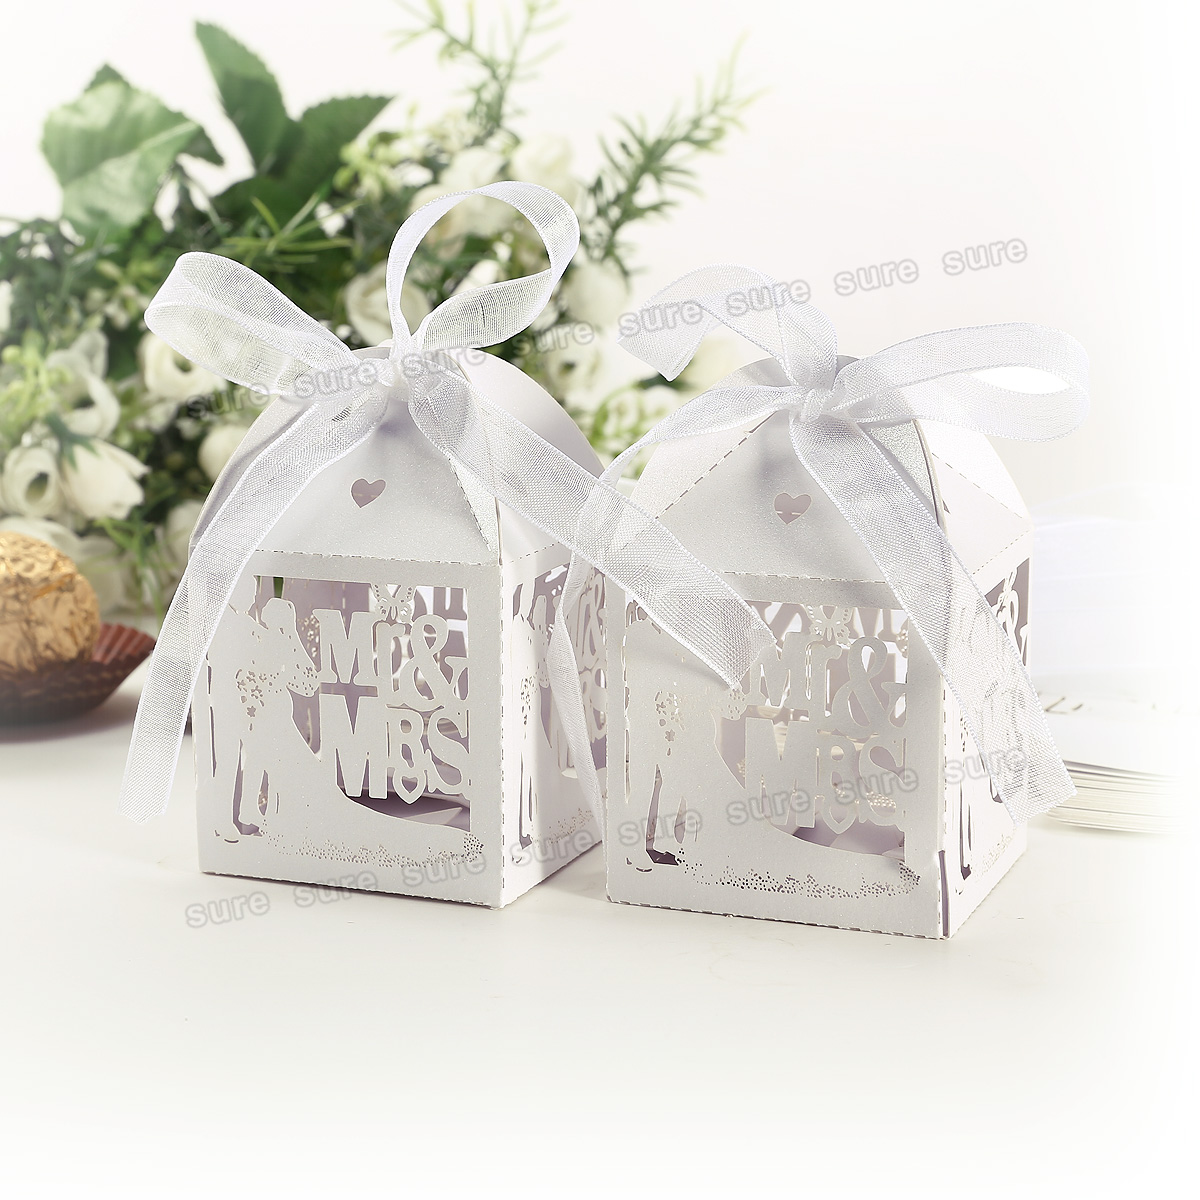 Wedding Party Gifts For Bride And Groom : 25Pcs Groom and Bride Laser Cut Ribbon Candy Gift Boxes Wedding Party ...